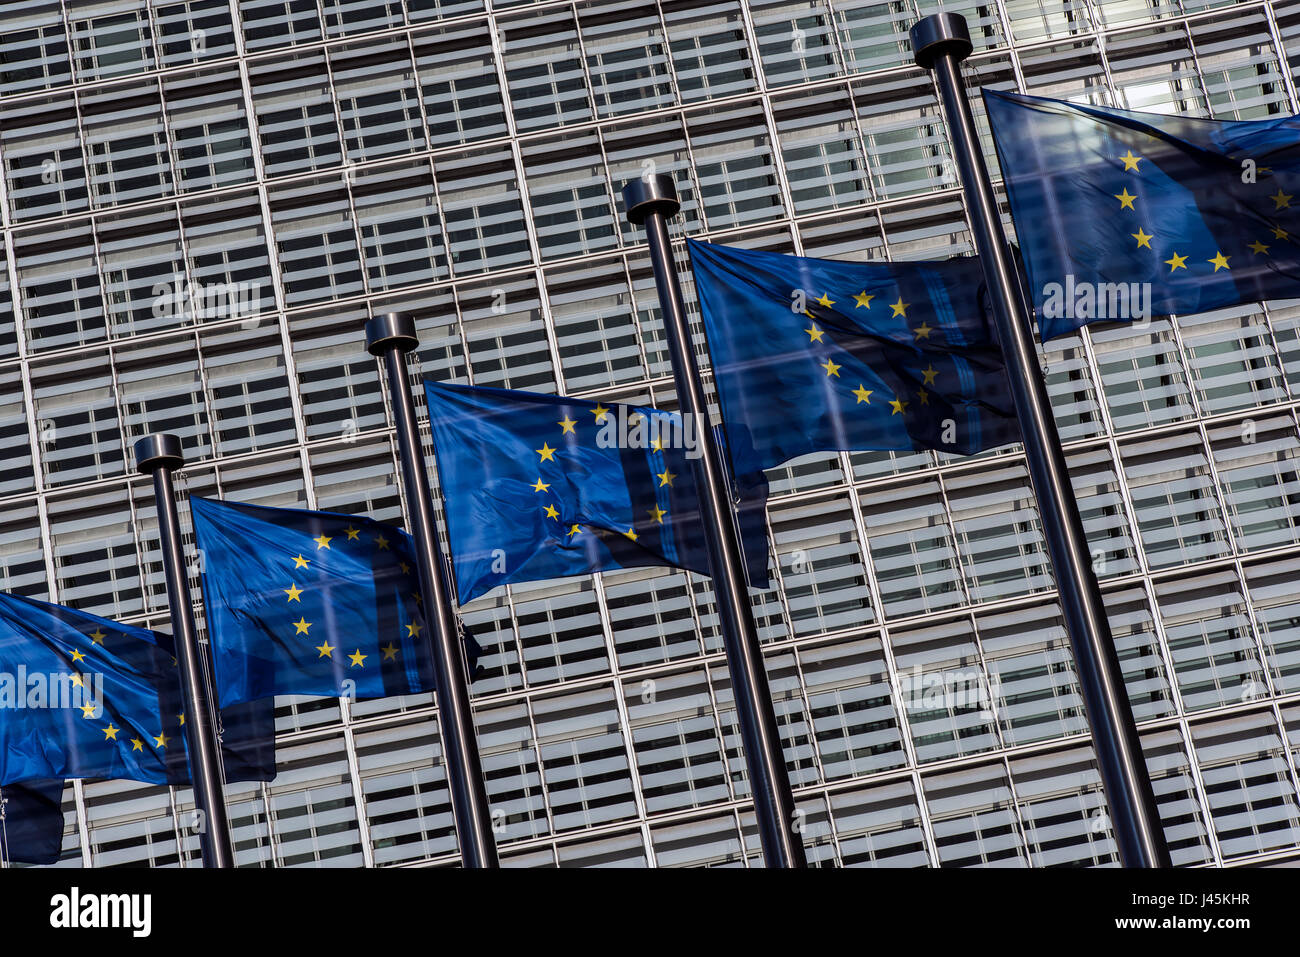 Flags of European Union weaving outside the European Commission building, Brussels, Belgium - Stock Image